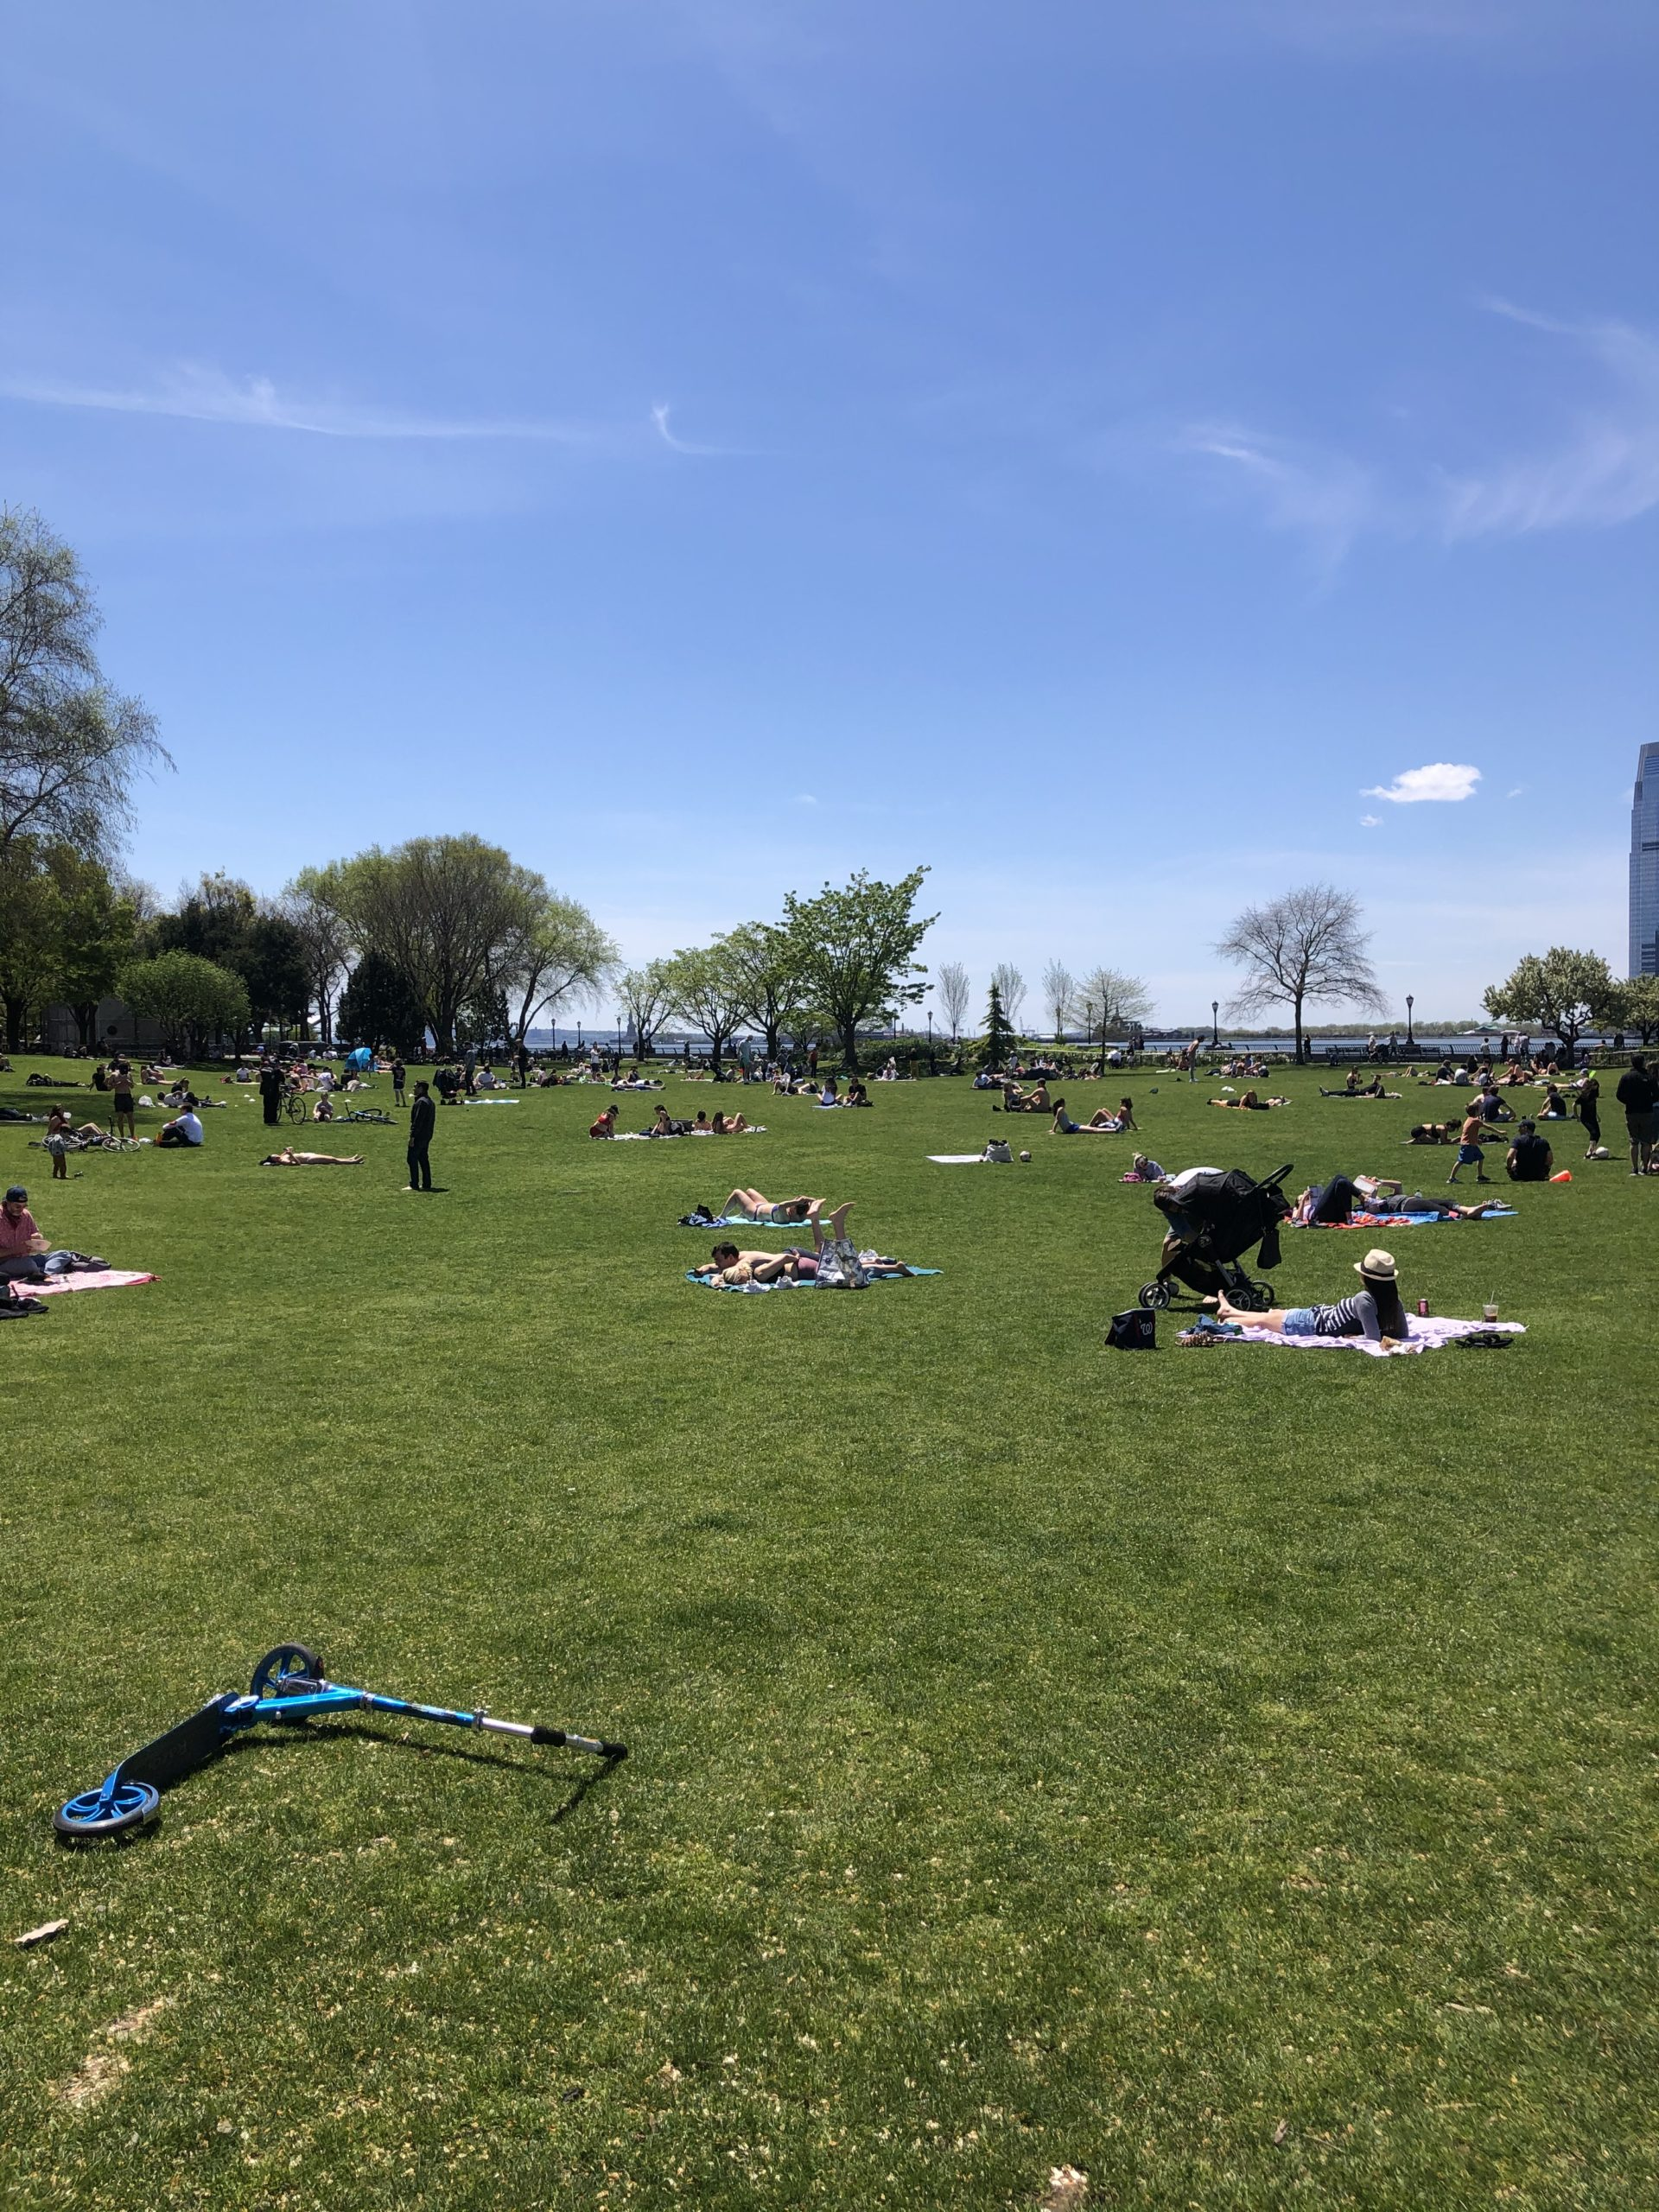 People sunbaking in a park